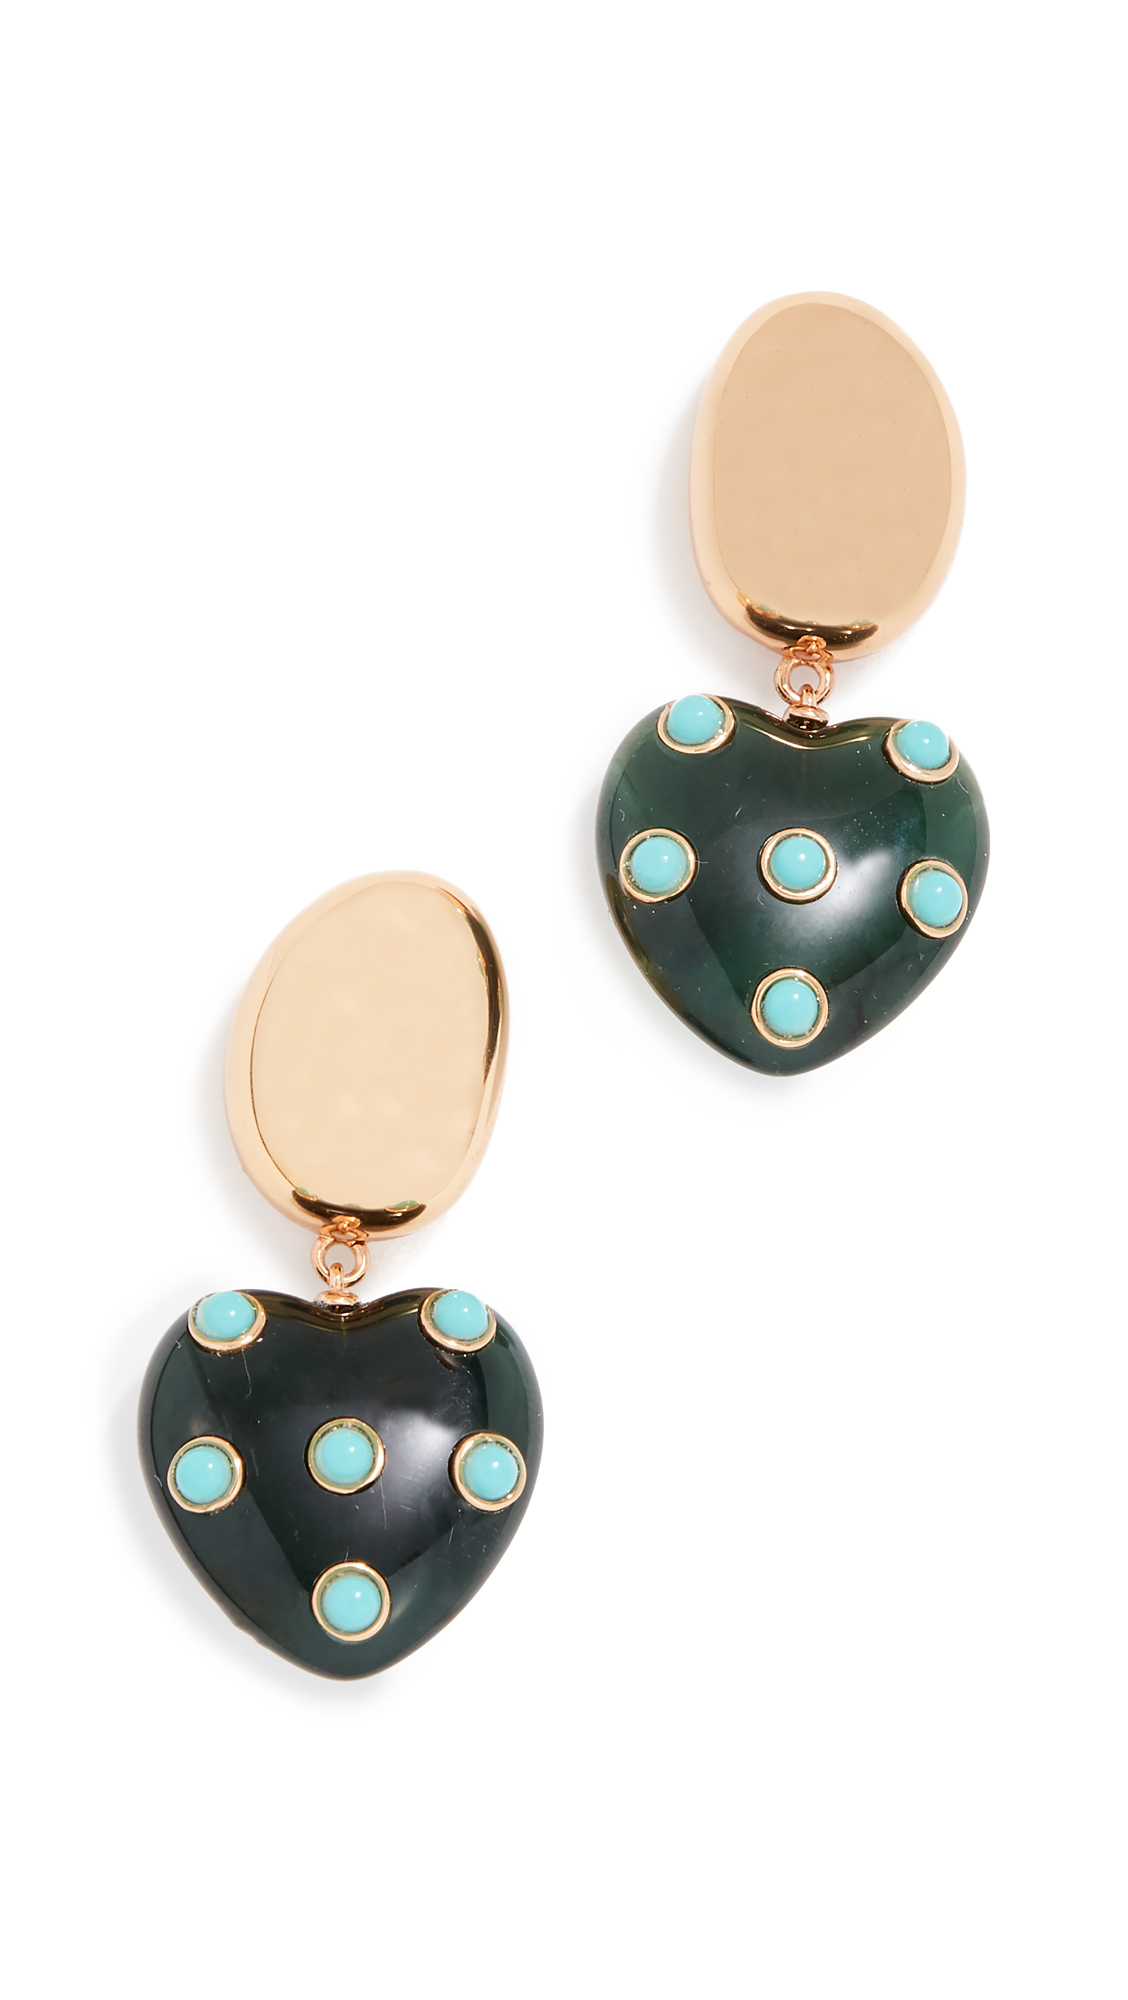 LIZZIE FORTUNATO AMORE EARRINGS